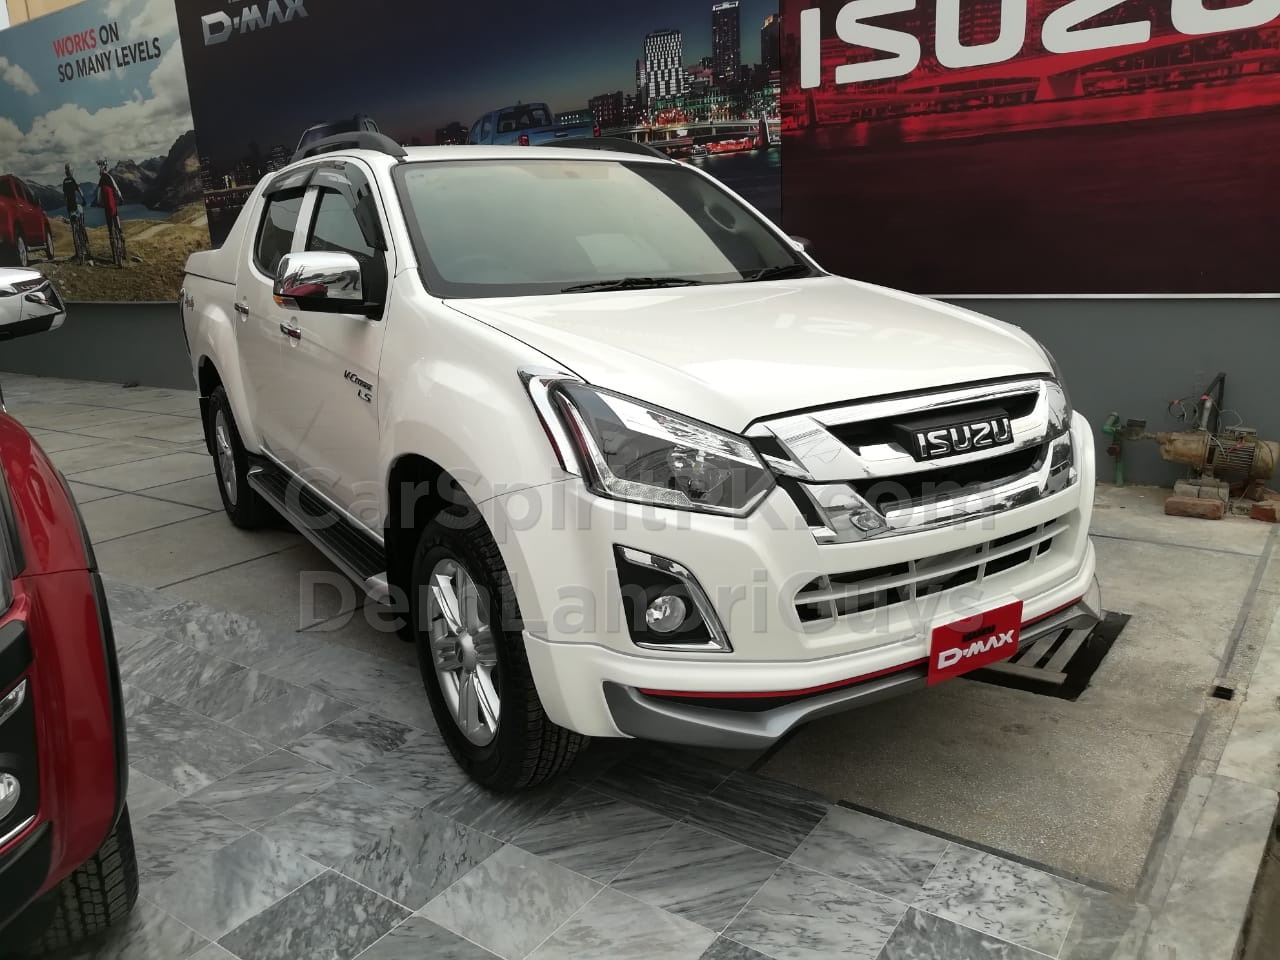 Ghandhara Officially Launches the Isuzu D-Max in Pakistan 9